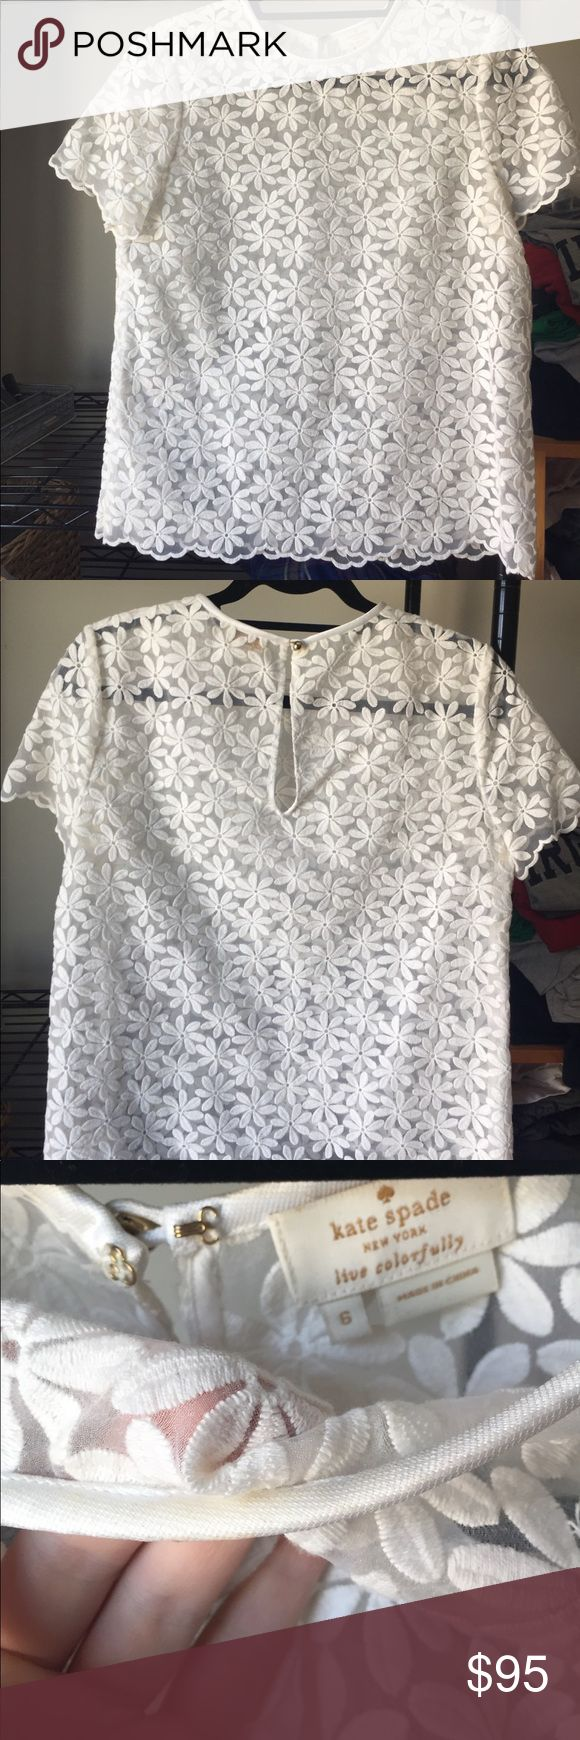 Kate Spade daisy blouse Darling Kate Spade daisy blouse. Keyhole back with gold button. See thru- would be sexy with a fun bra  underneath or pair with a nude cami to make it more modest. Size 6 but fits like a 4.  Slight discoloration on inside of color but would probably come out with dry cleaning (not visible from the outside). Worn 1-2 times. kate spade Tops Blouses